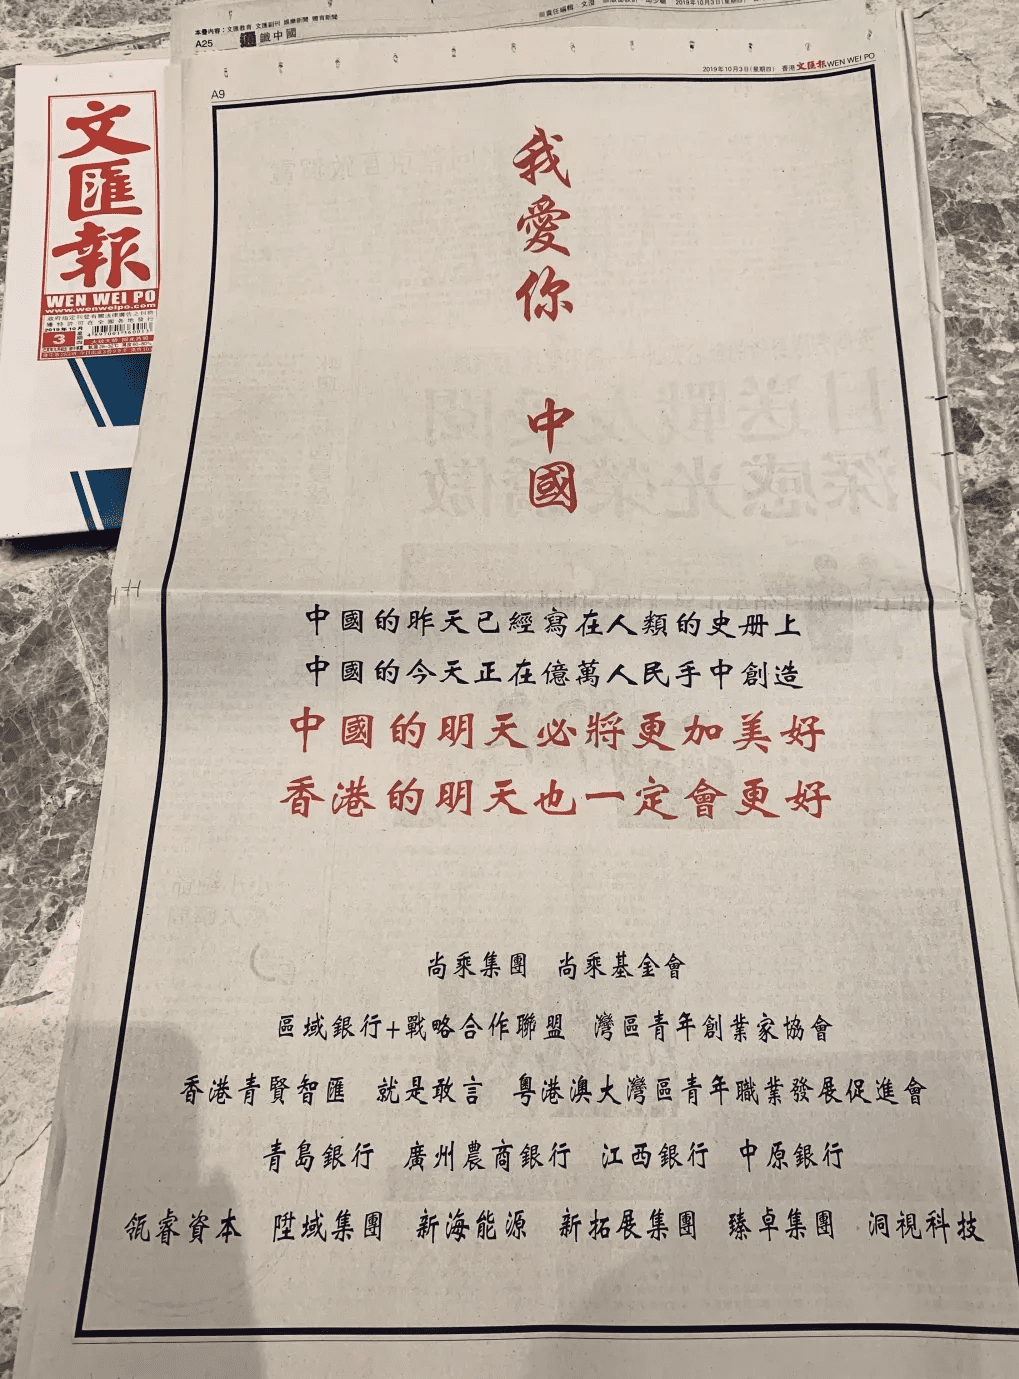 AMTD Cooperate with A Number of Patriotic Hong Kong Associations, Banks, Enterprises and Other Partners to Appeal: To Be Proud of the Great Motherland and Strive for Hong Kong